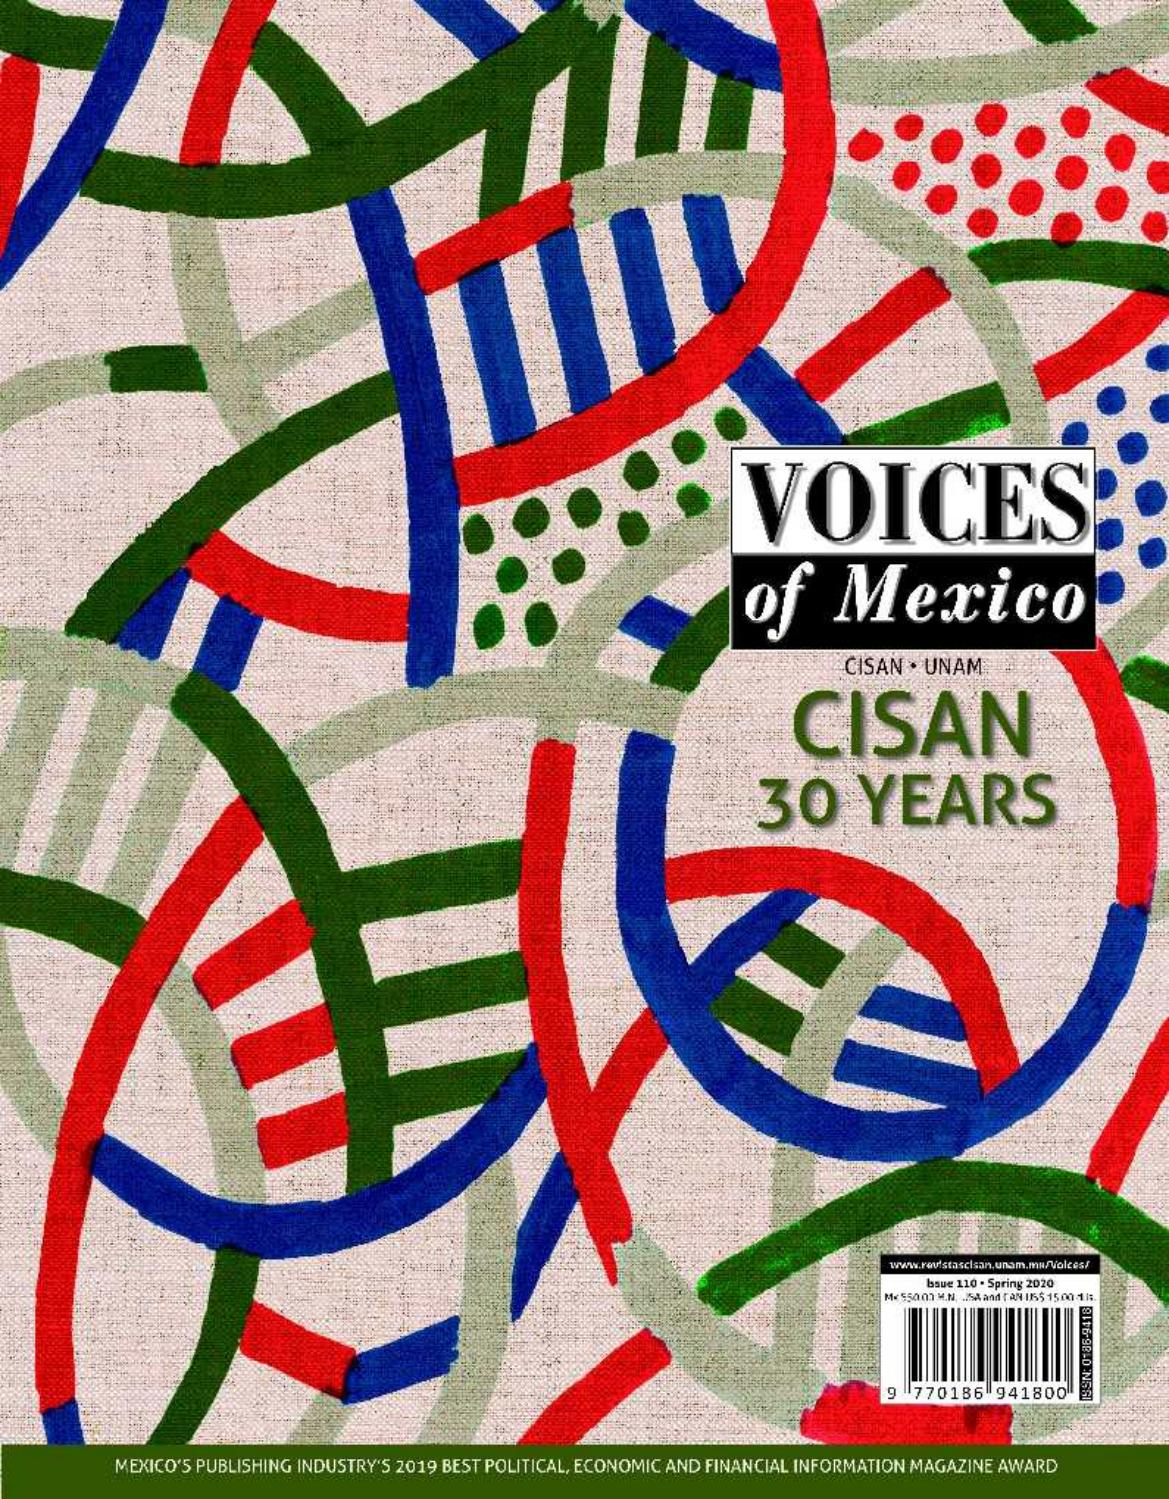 Voices Of Mexico Issue 110 By Cisan Unam Issuu